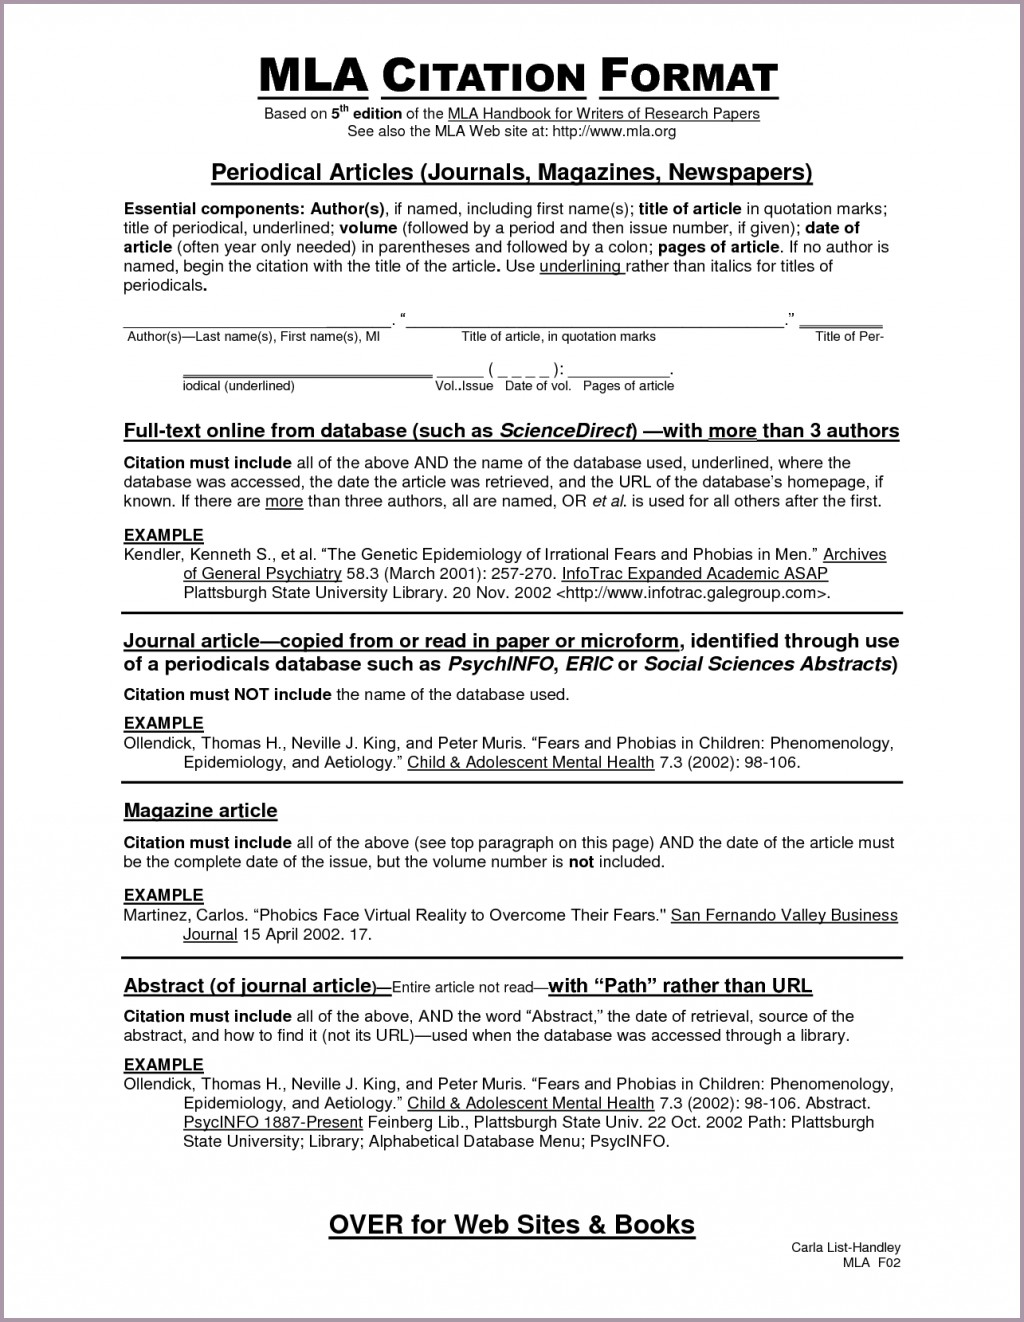 009 Research Paper How To Cite Using Mla Format Wikipedia Citation Resume Essay Frightening A In Website Example Large